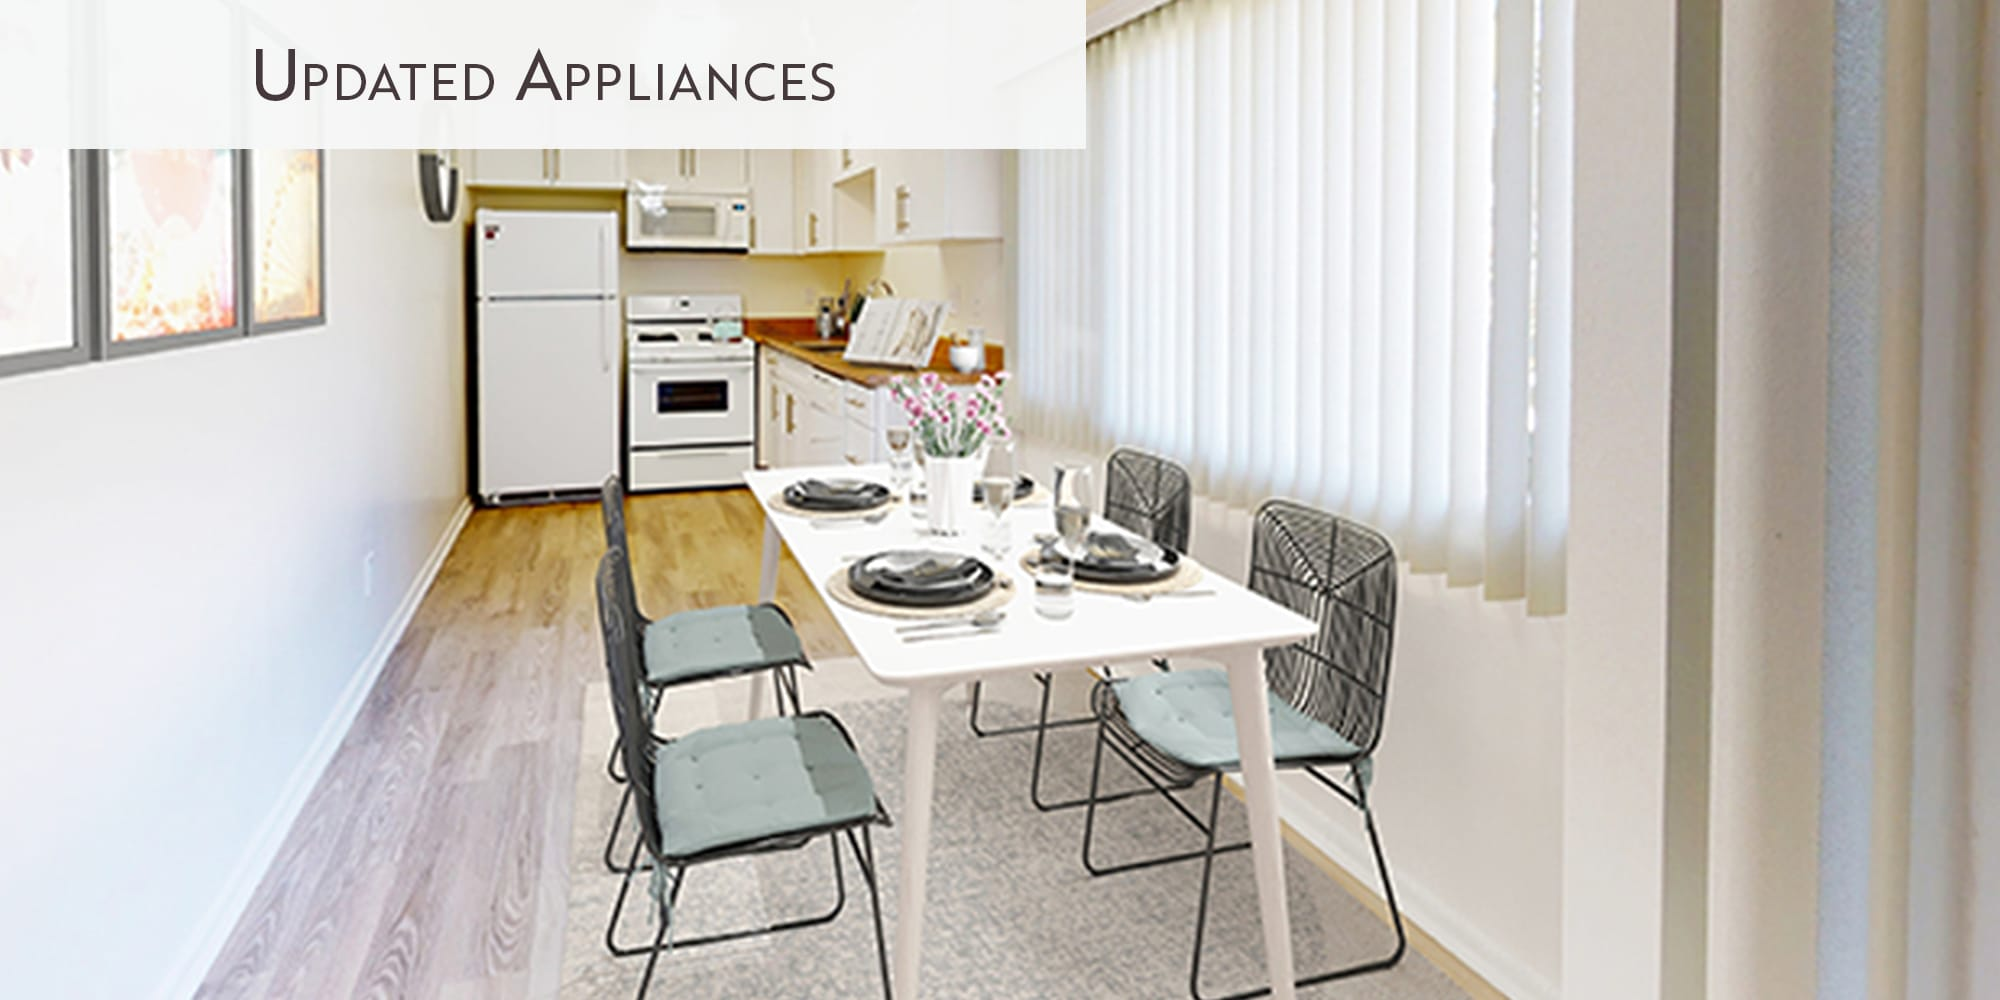 Updated appliances at West Park Village in Los Angeles, California